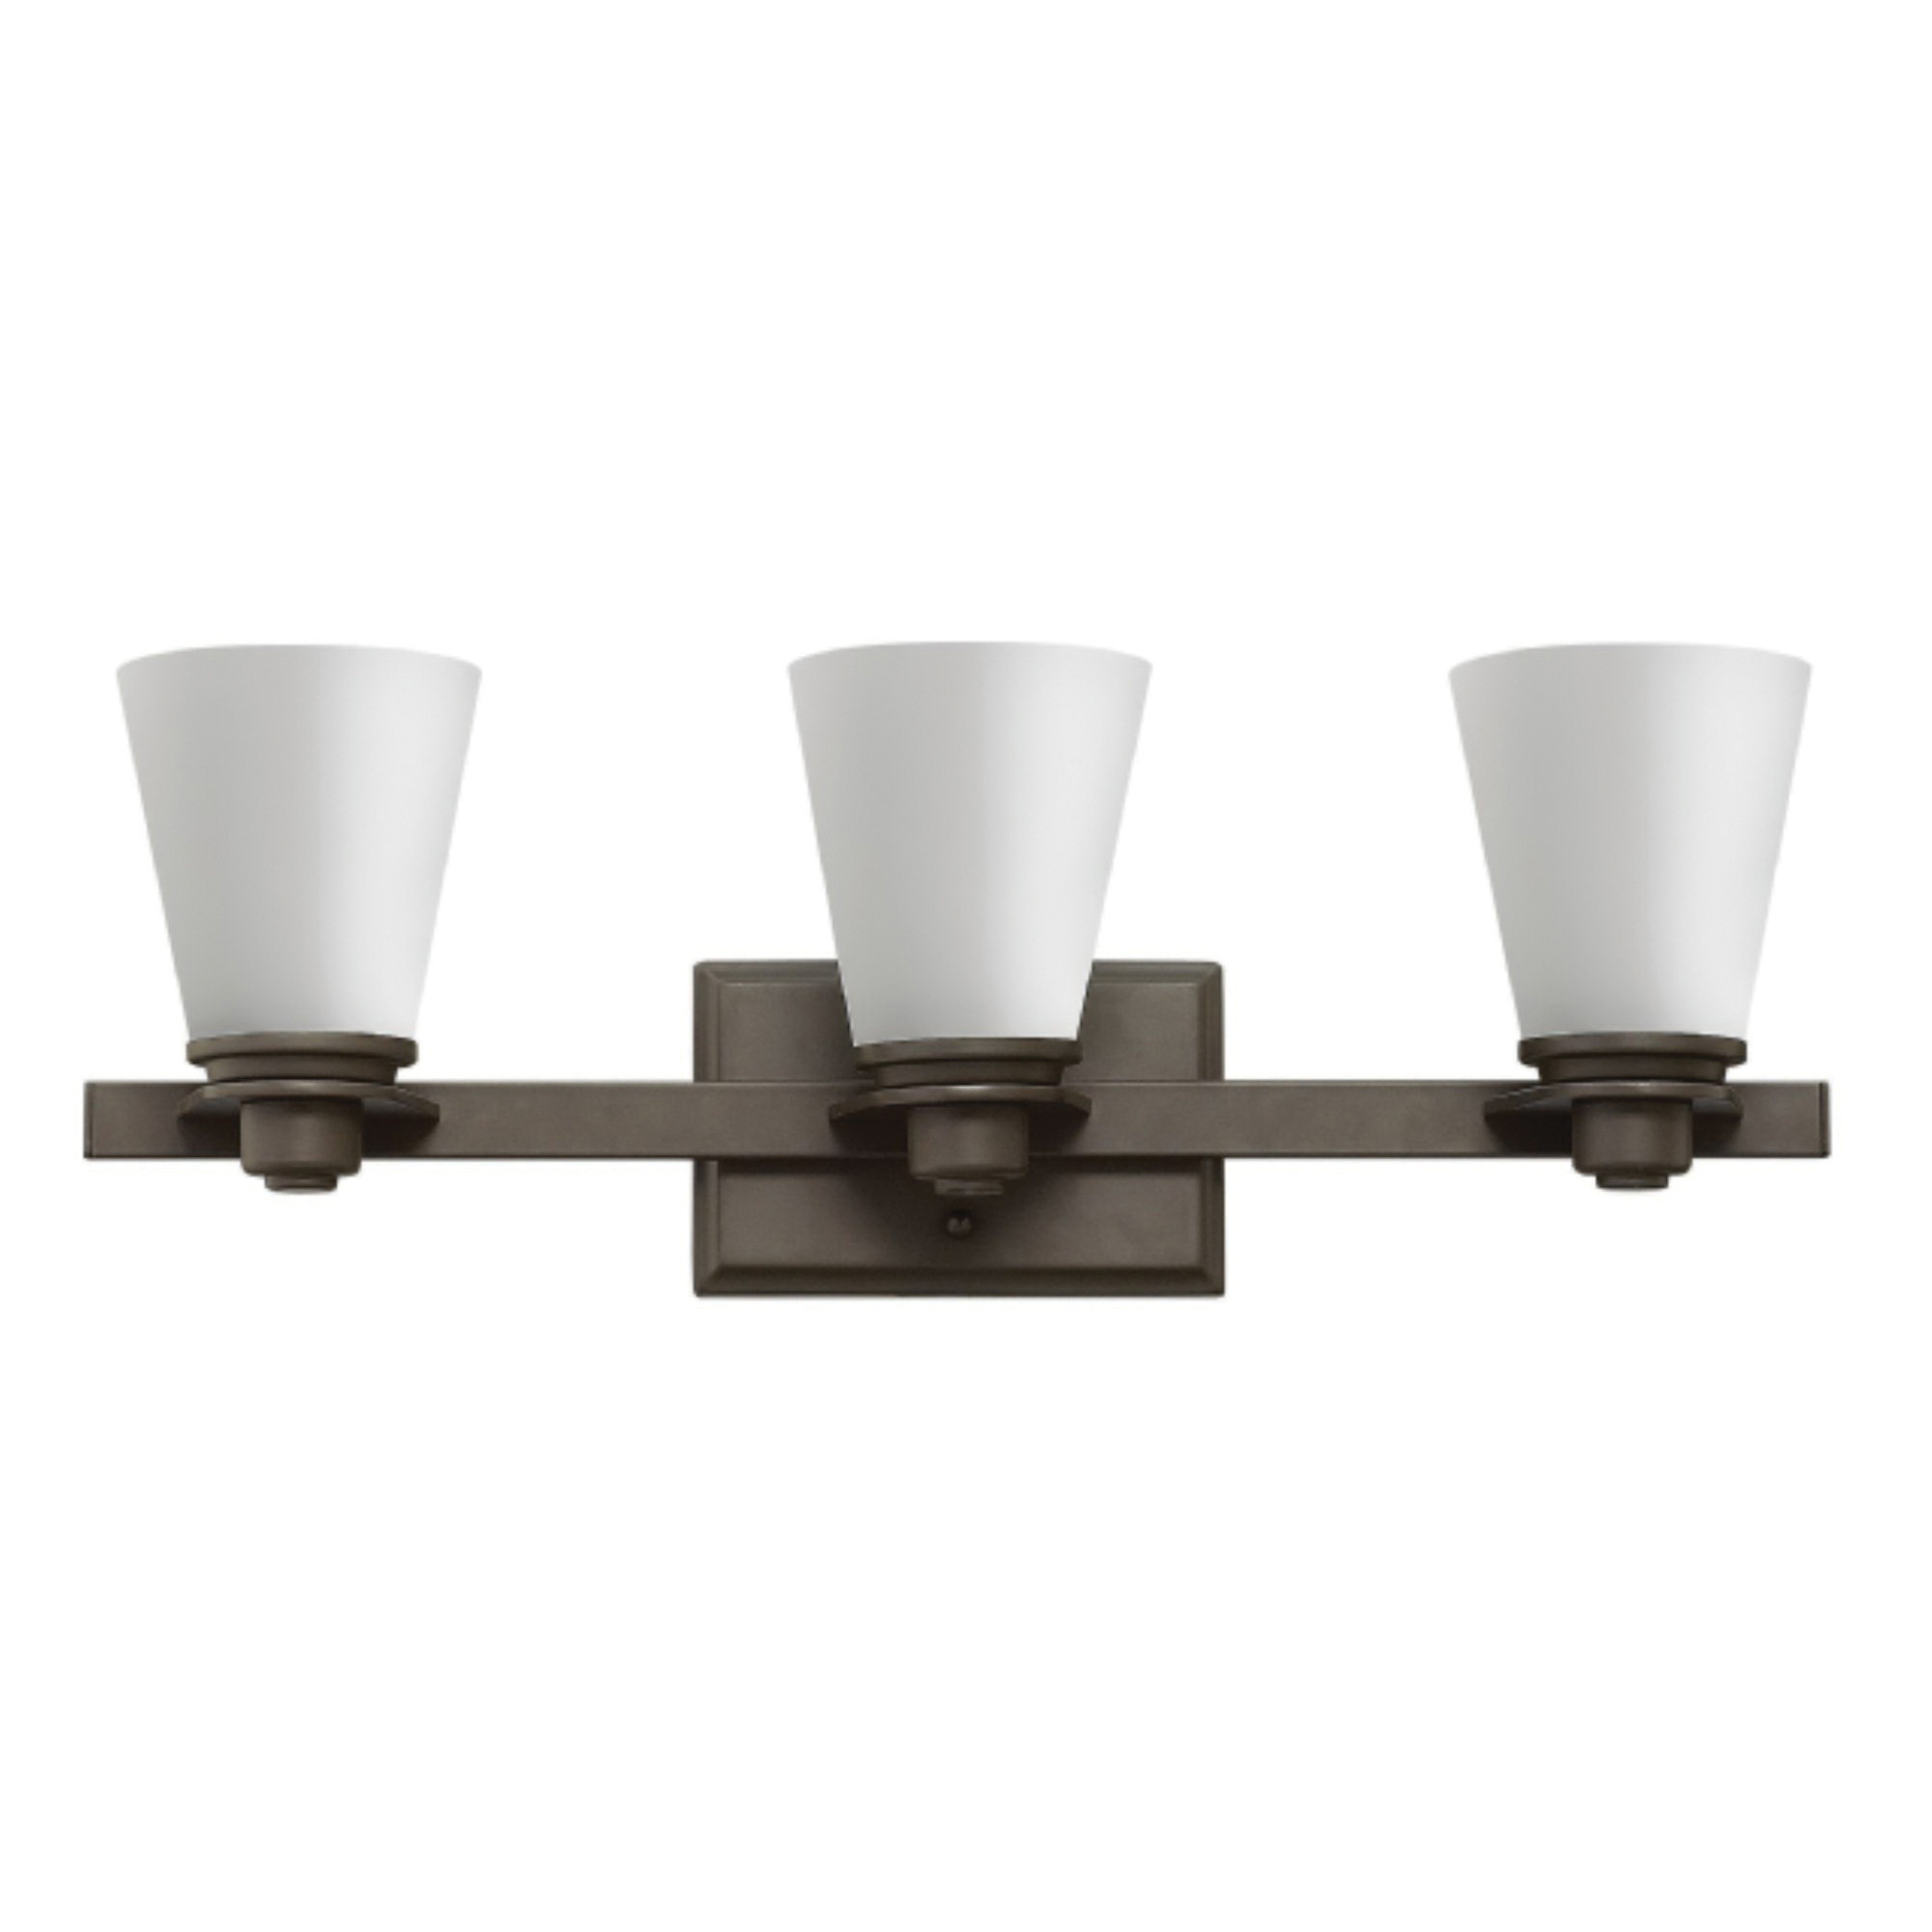 Hinkley lighting 5553kz 3 light bath light 300 51 watt 120 volt ac buckeye bronze avon bath vanity light indoor fixtures lighting lighting yale